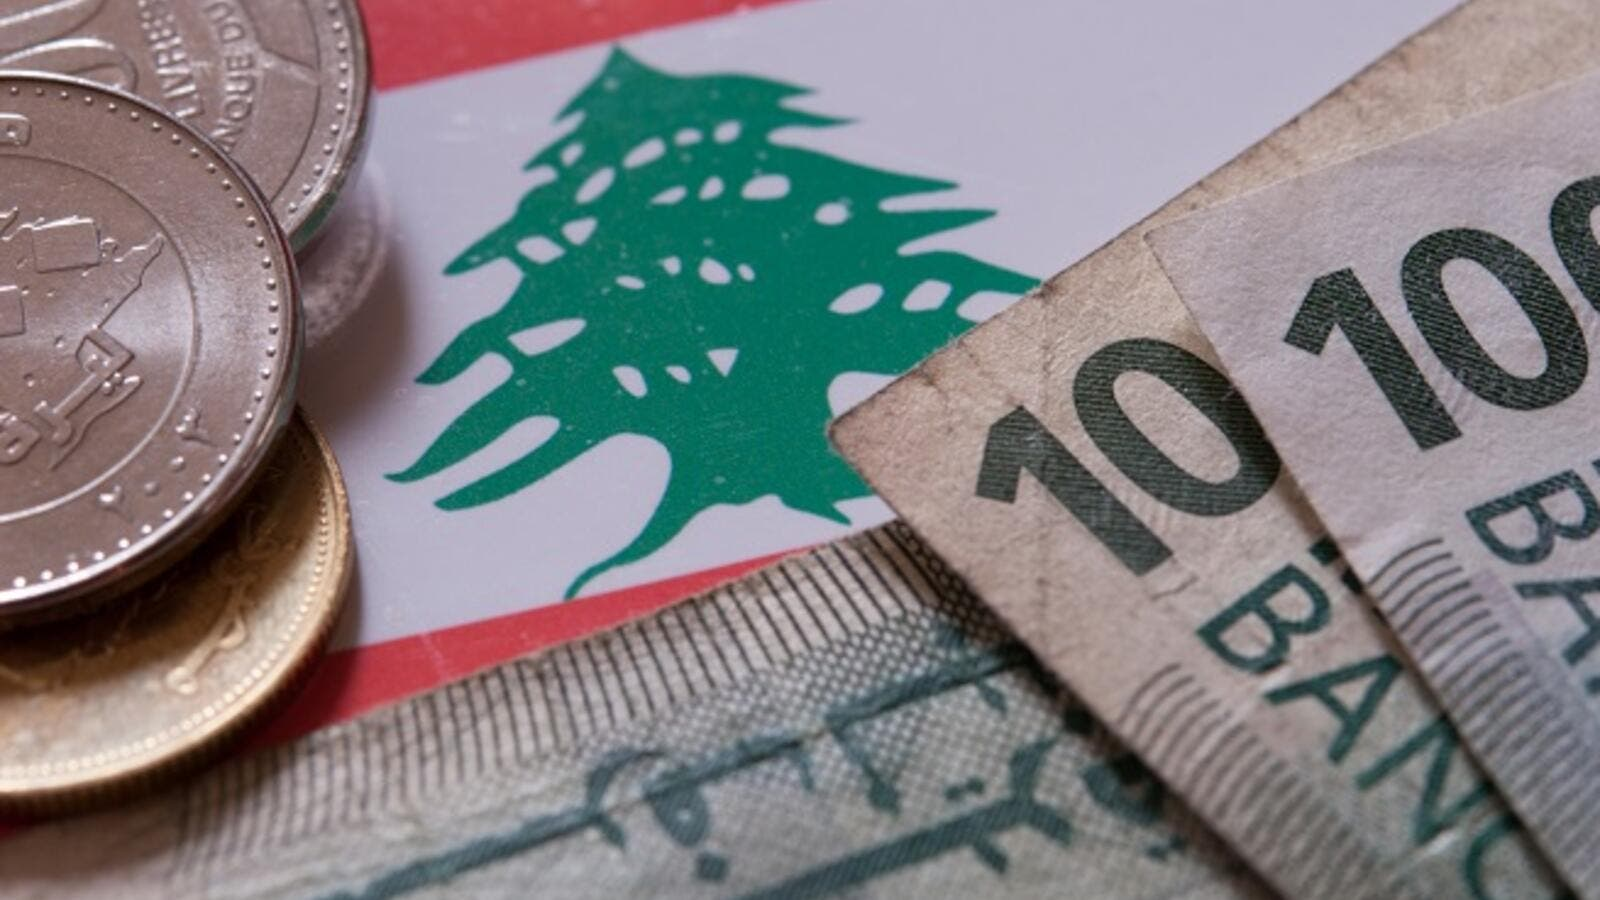 The cost of the Syrian war on Lebanon amounts to about $14 billion. (Shutterstock)